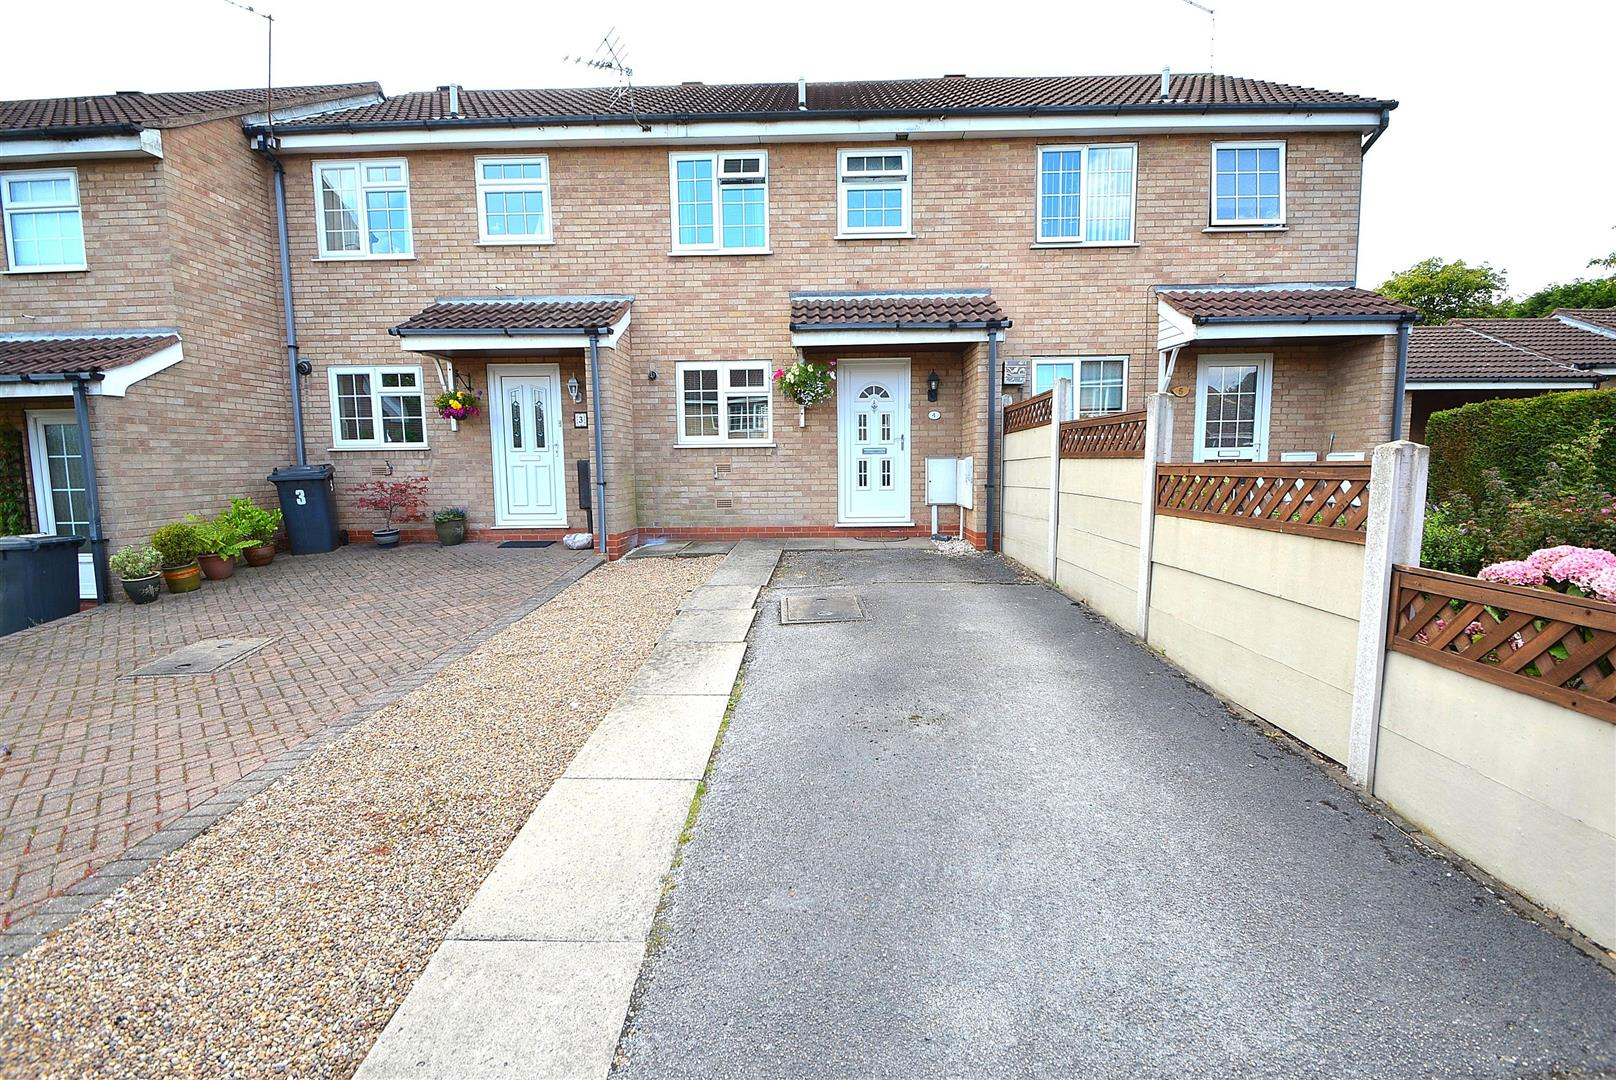 2 Bedrooms Terraced House for sale in Blenheim Court, Sandiacre